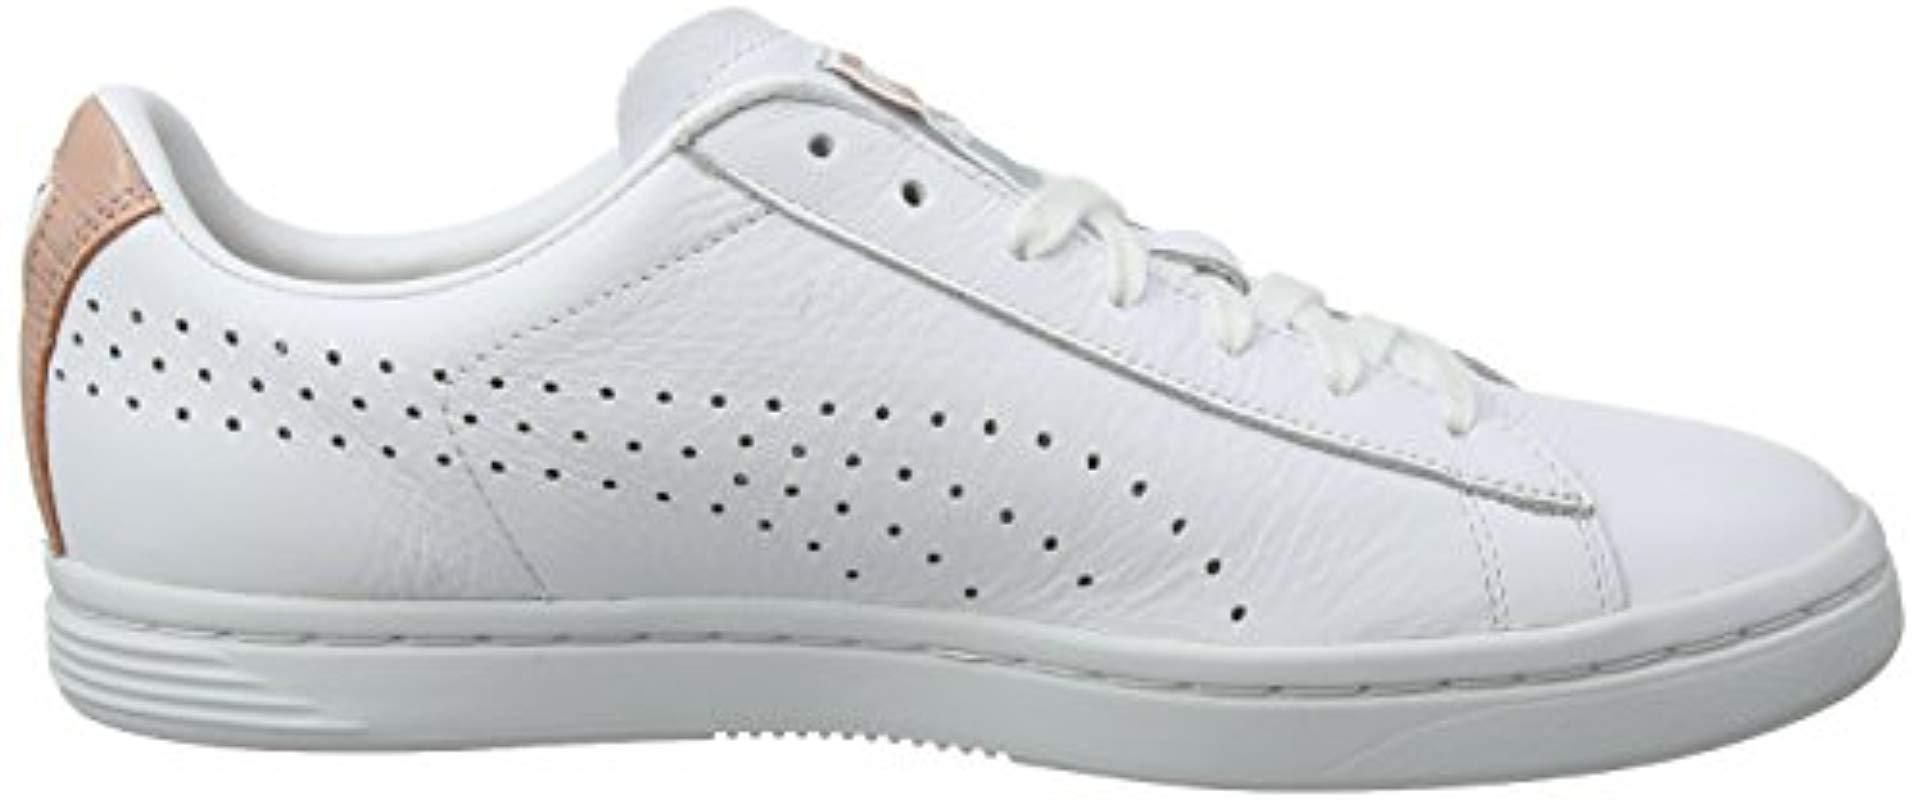 4637a8a9a1af PUMA Unisex Adults  Court Star Nm Low-top Sneakers - Lyst